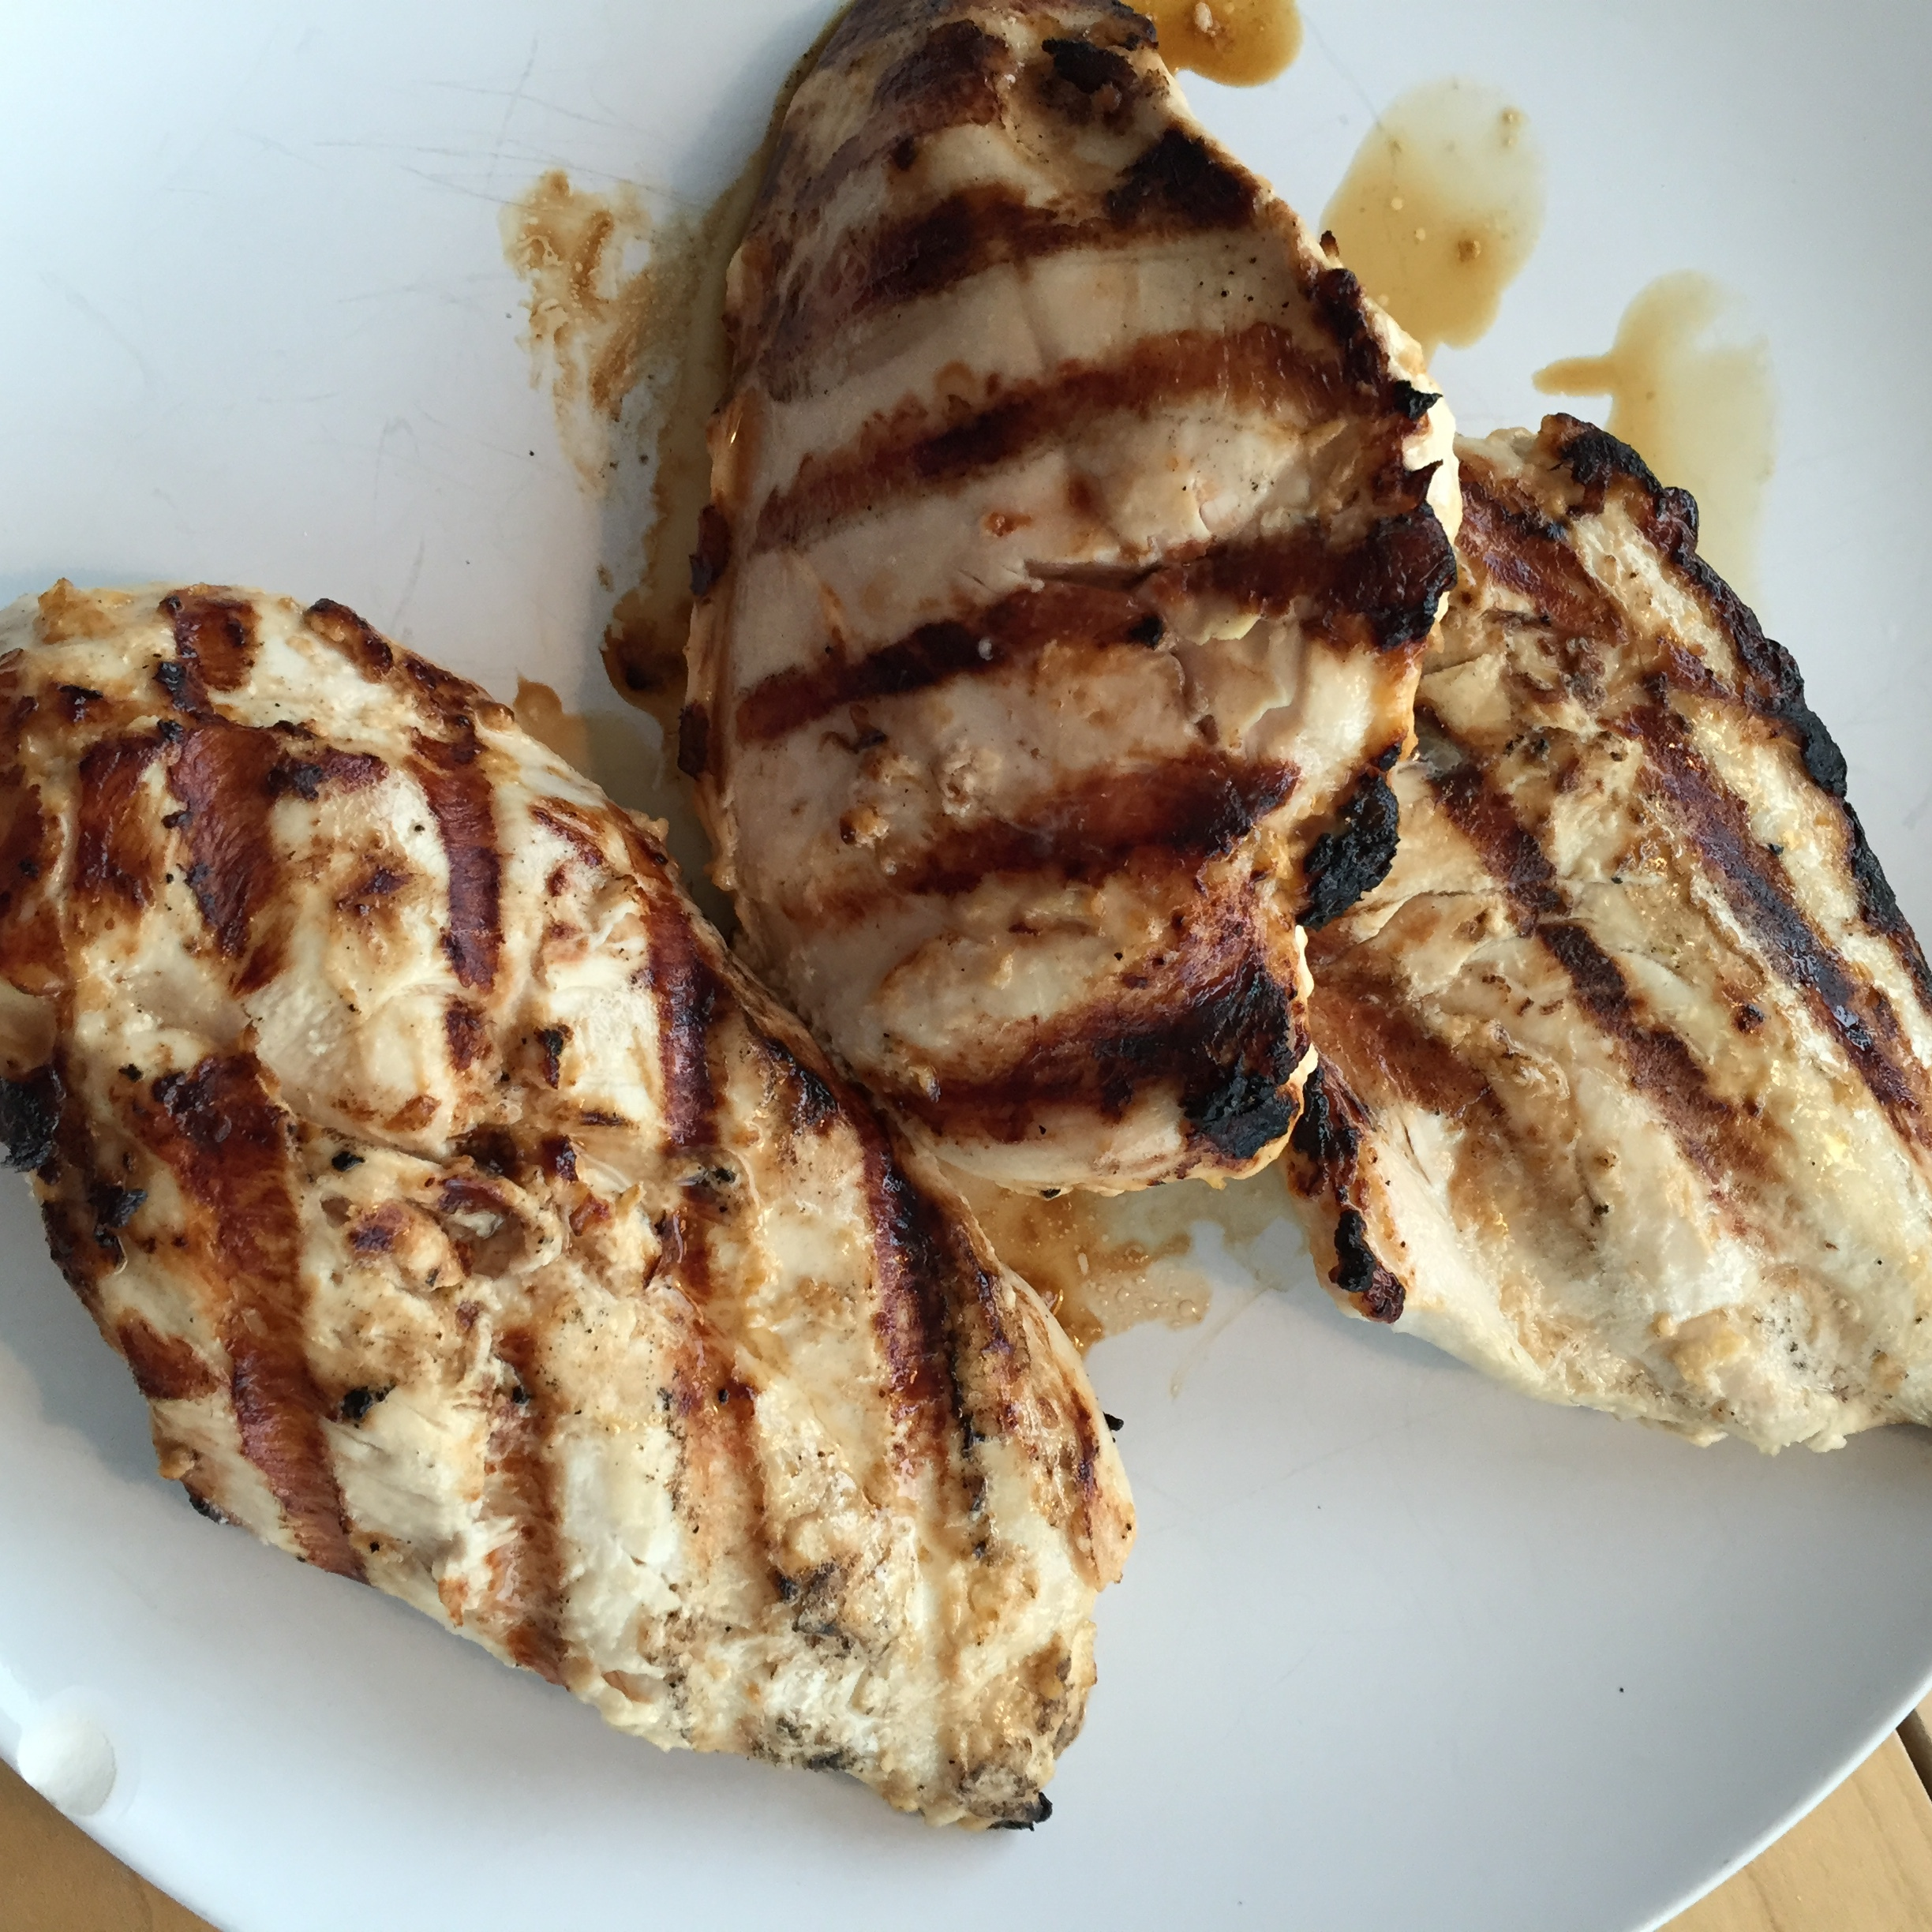 extra-juicy grilled chicken breasts